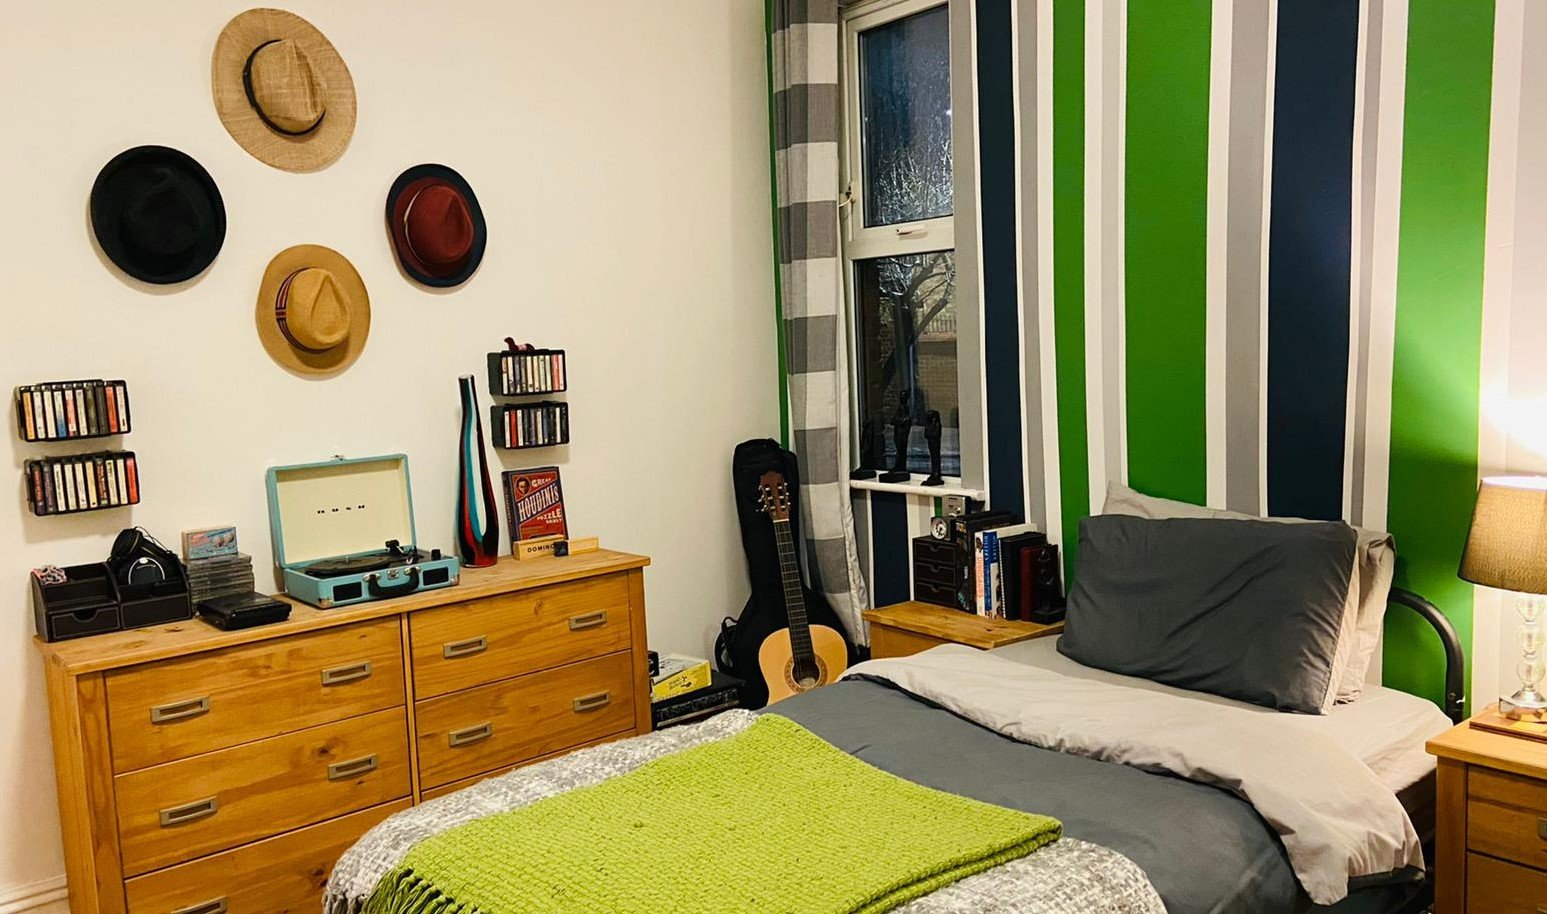 rutland-road-residential-bedfordshire-supported-hosuing-bedroom